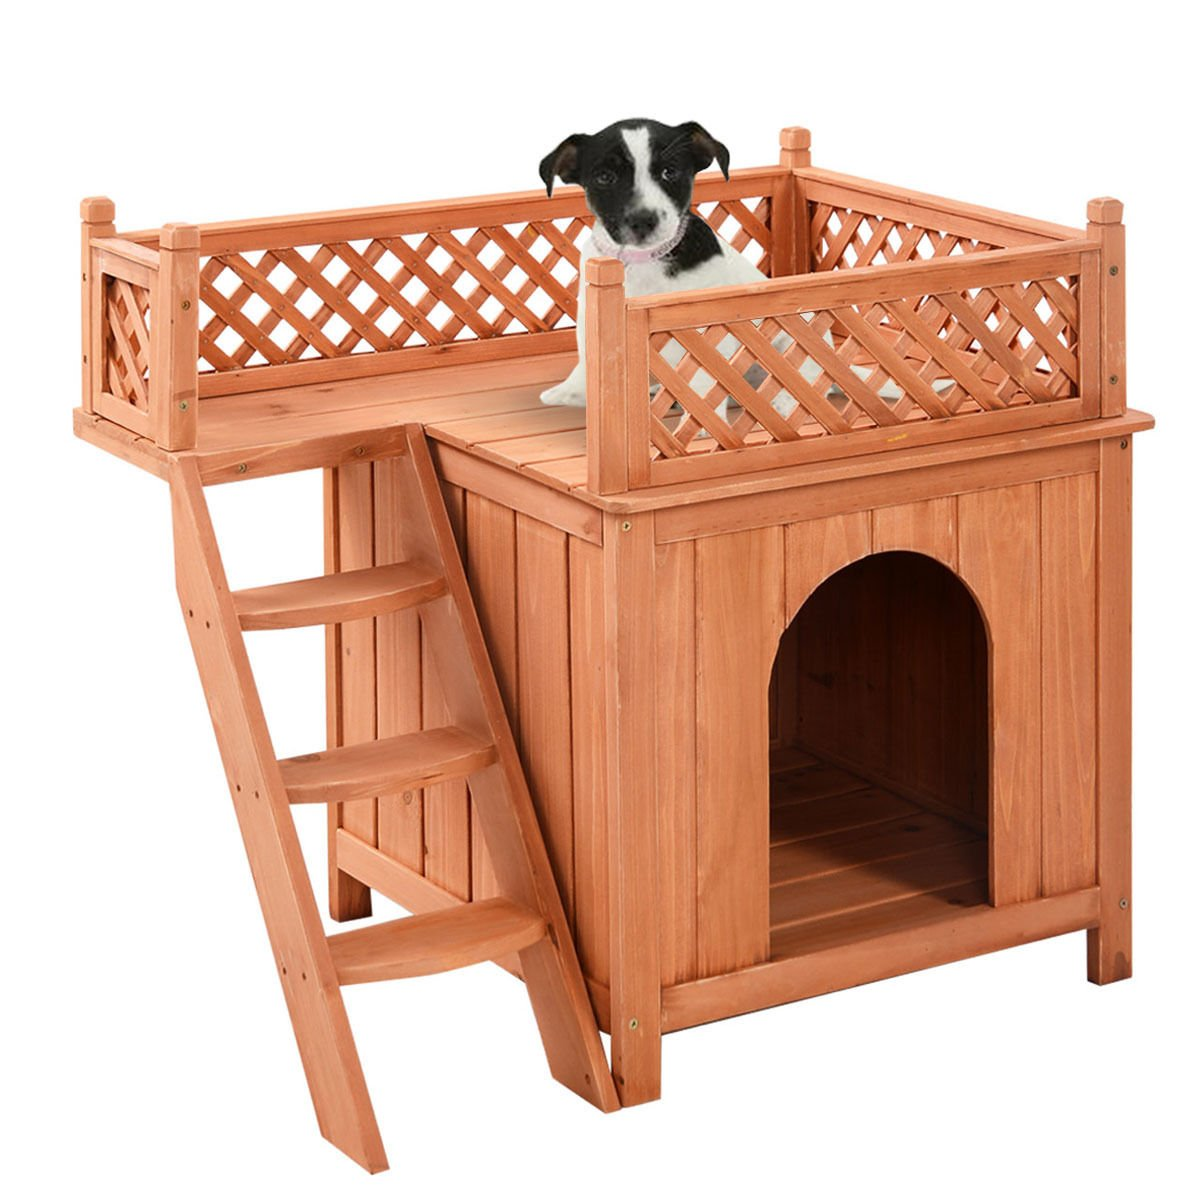 Wood Pet Dog House Wooden Puppy Room Indoor & Outdoor Roof Balcony Bed Shelter